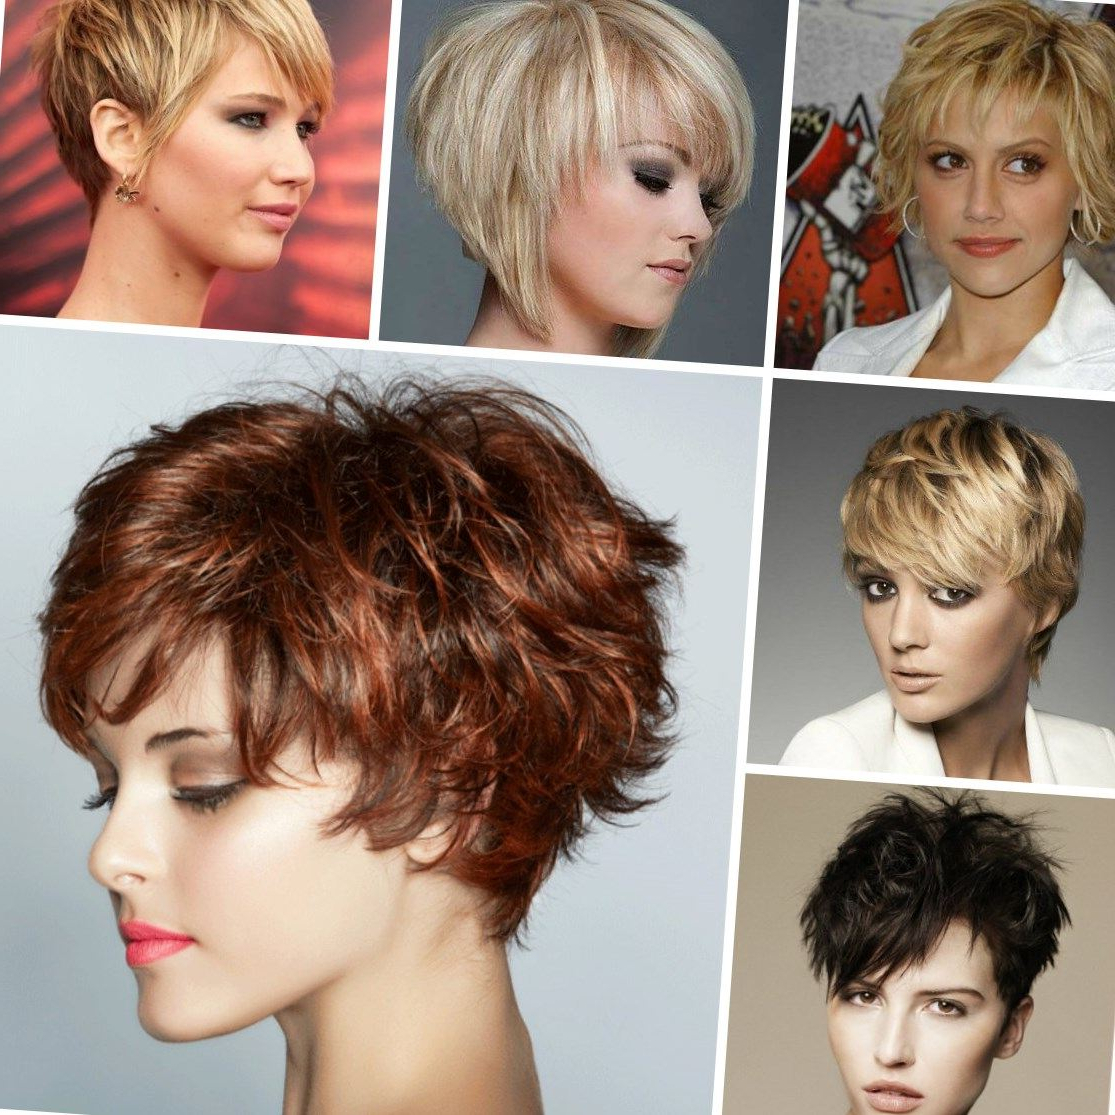 Haircuts For Older Women Short Hairstyles 20172018 Short Hairstyles Inside Short Haircuts For Seniors (View 24 of 25)